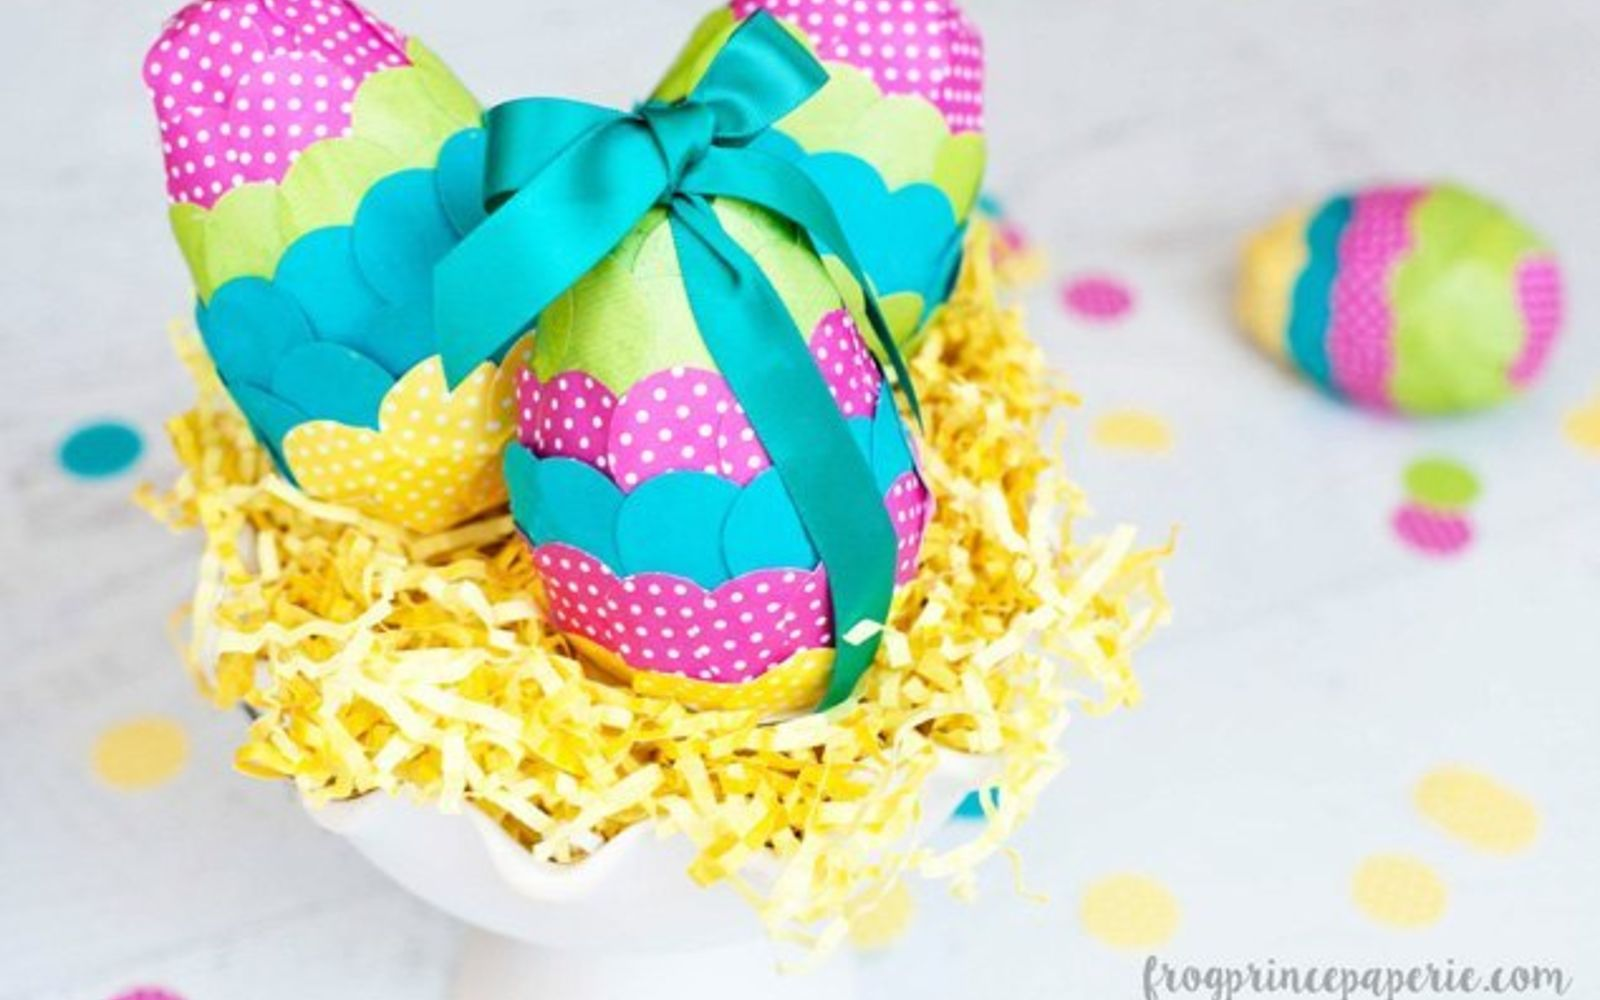 s 25 quick easter egg ideas that are just too stinkin cute, crafts, easter decorations, Create some paper mache confetti cuties